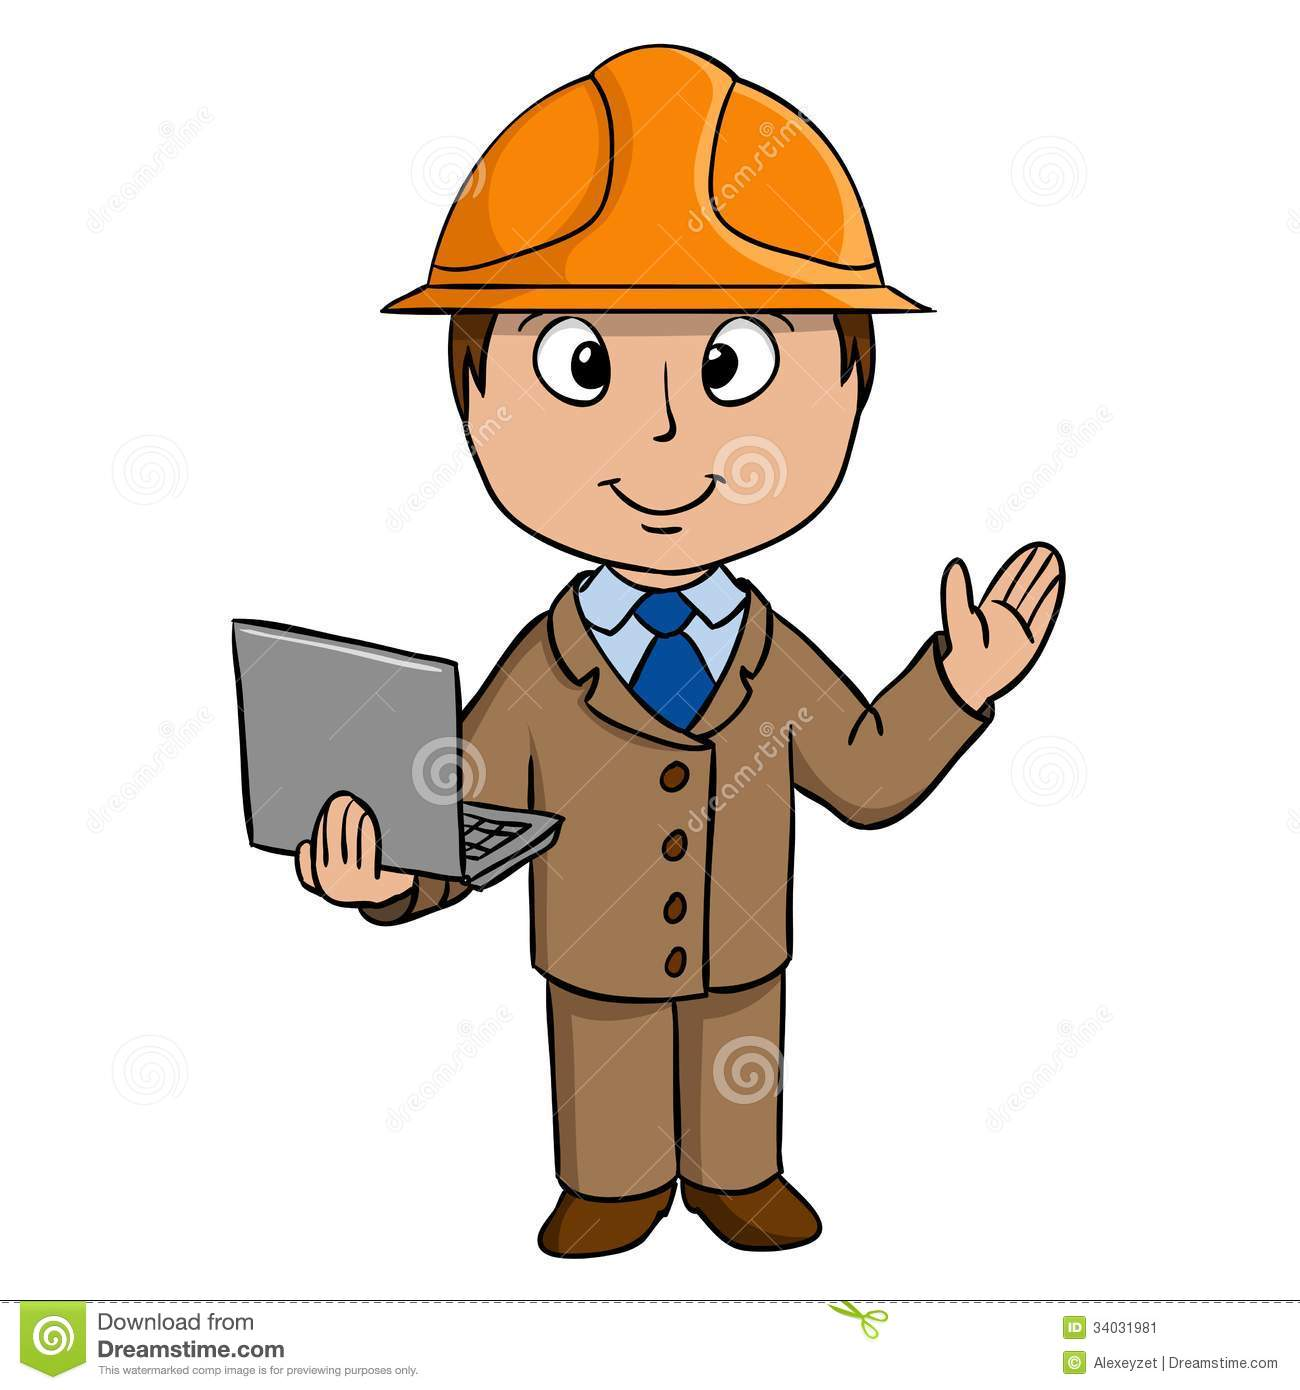 Engineer Clipart Images.